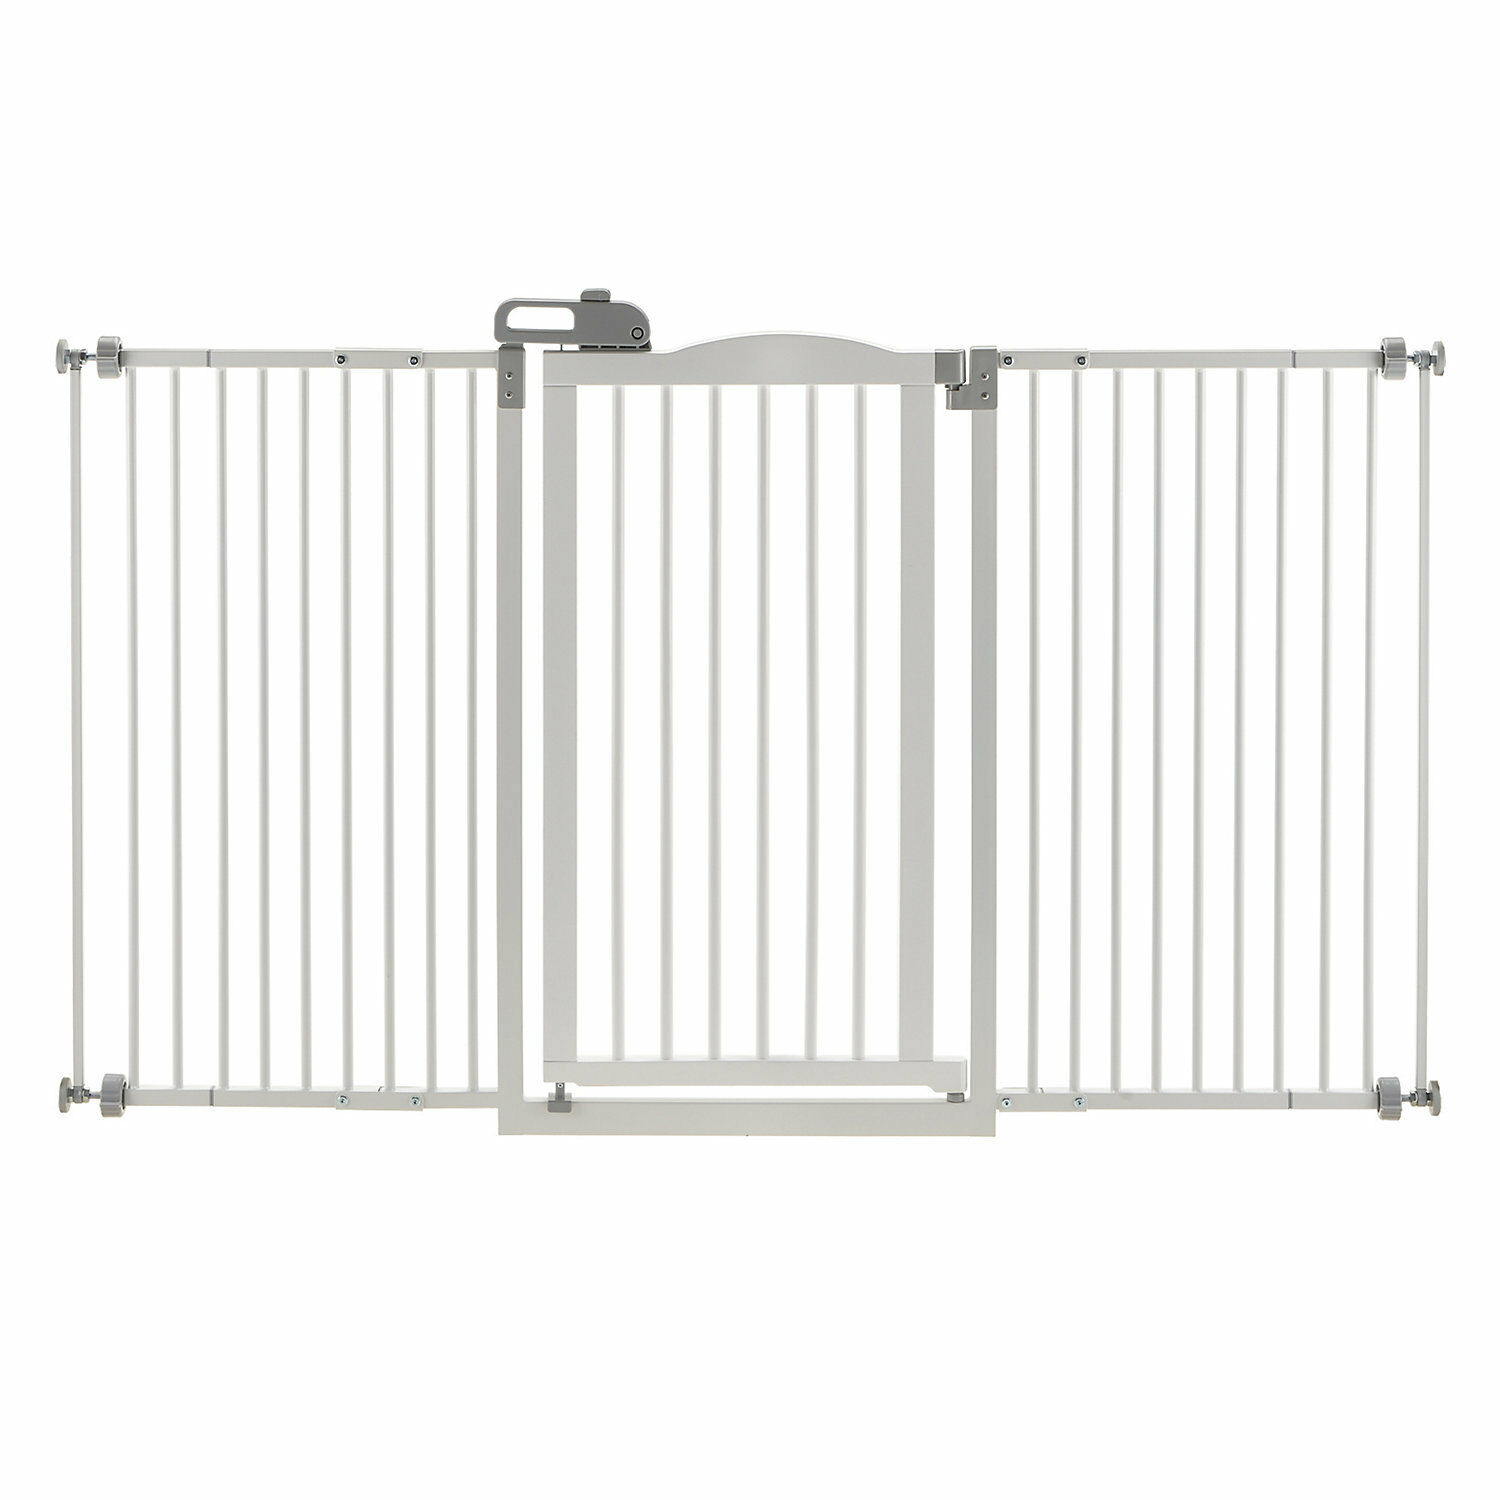 Richell Tall One-Touch White Pet Gate II Wide, 62.8  L x 38.4  H x 2  W